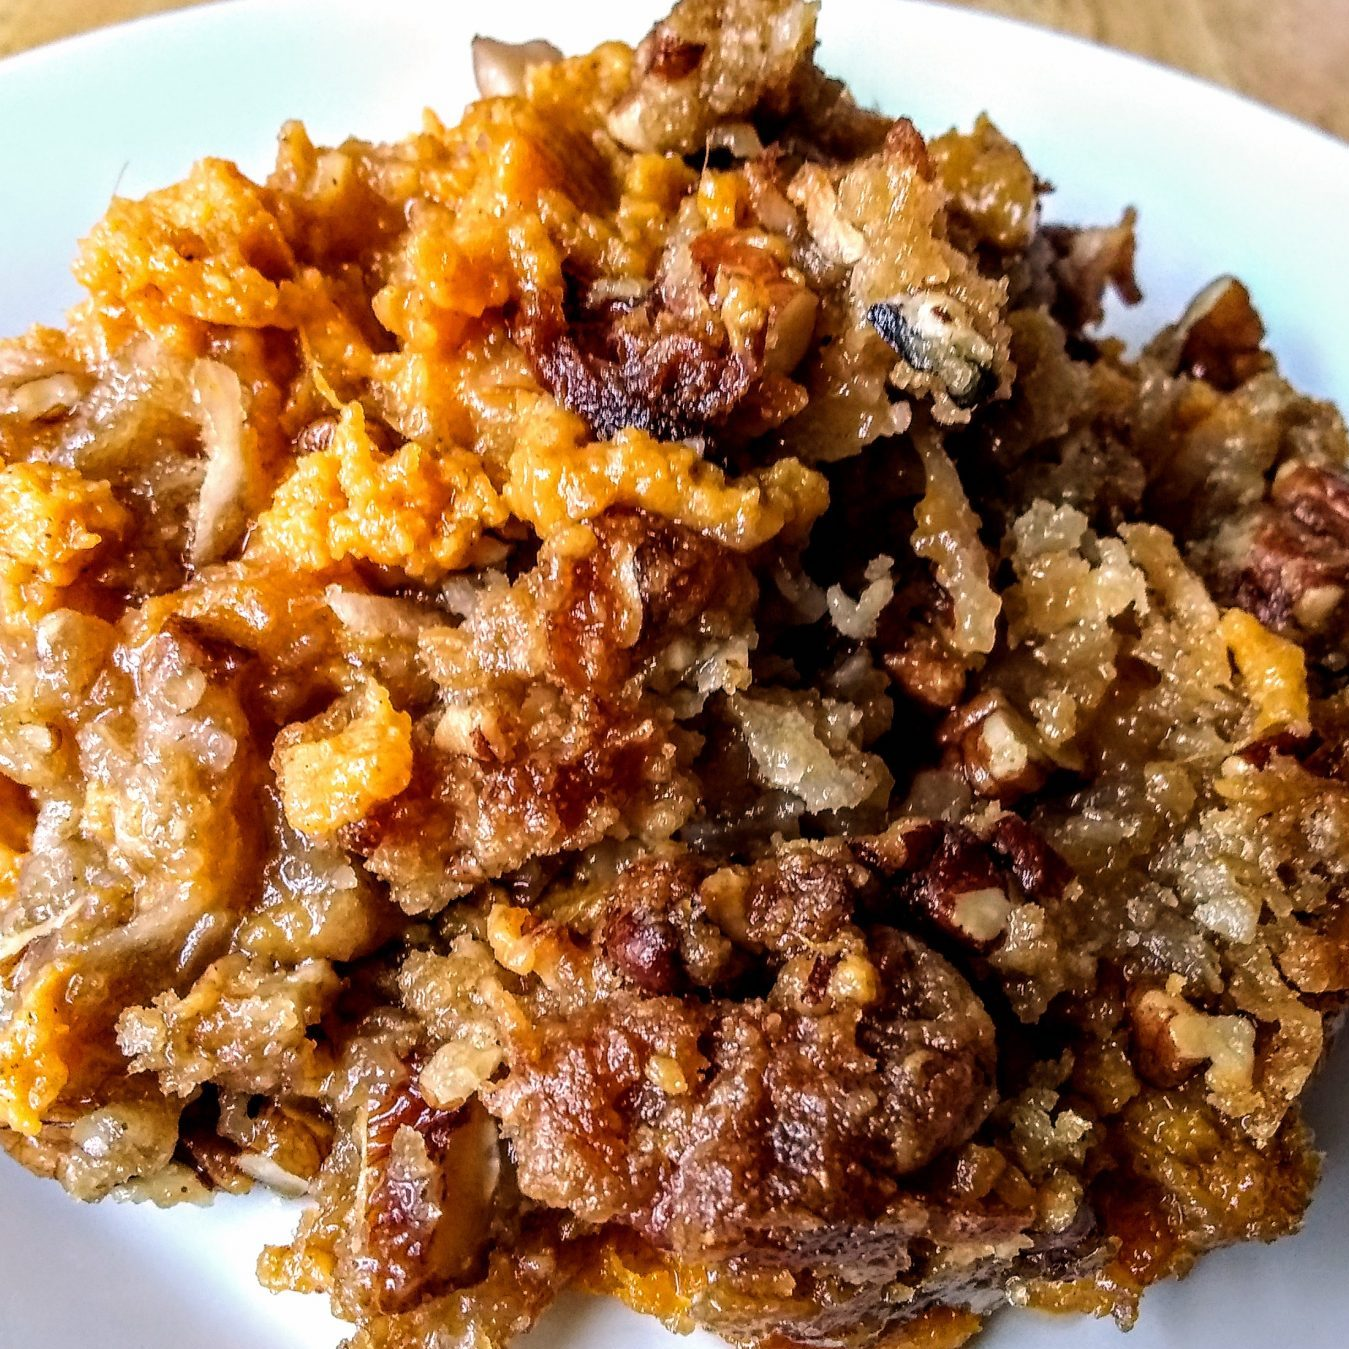 sweet potato casserole with streusel coconut topping on a white plate